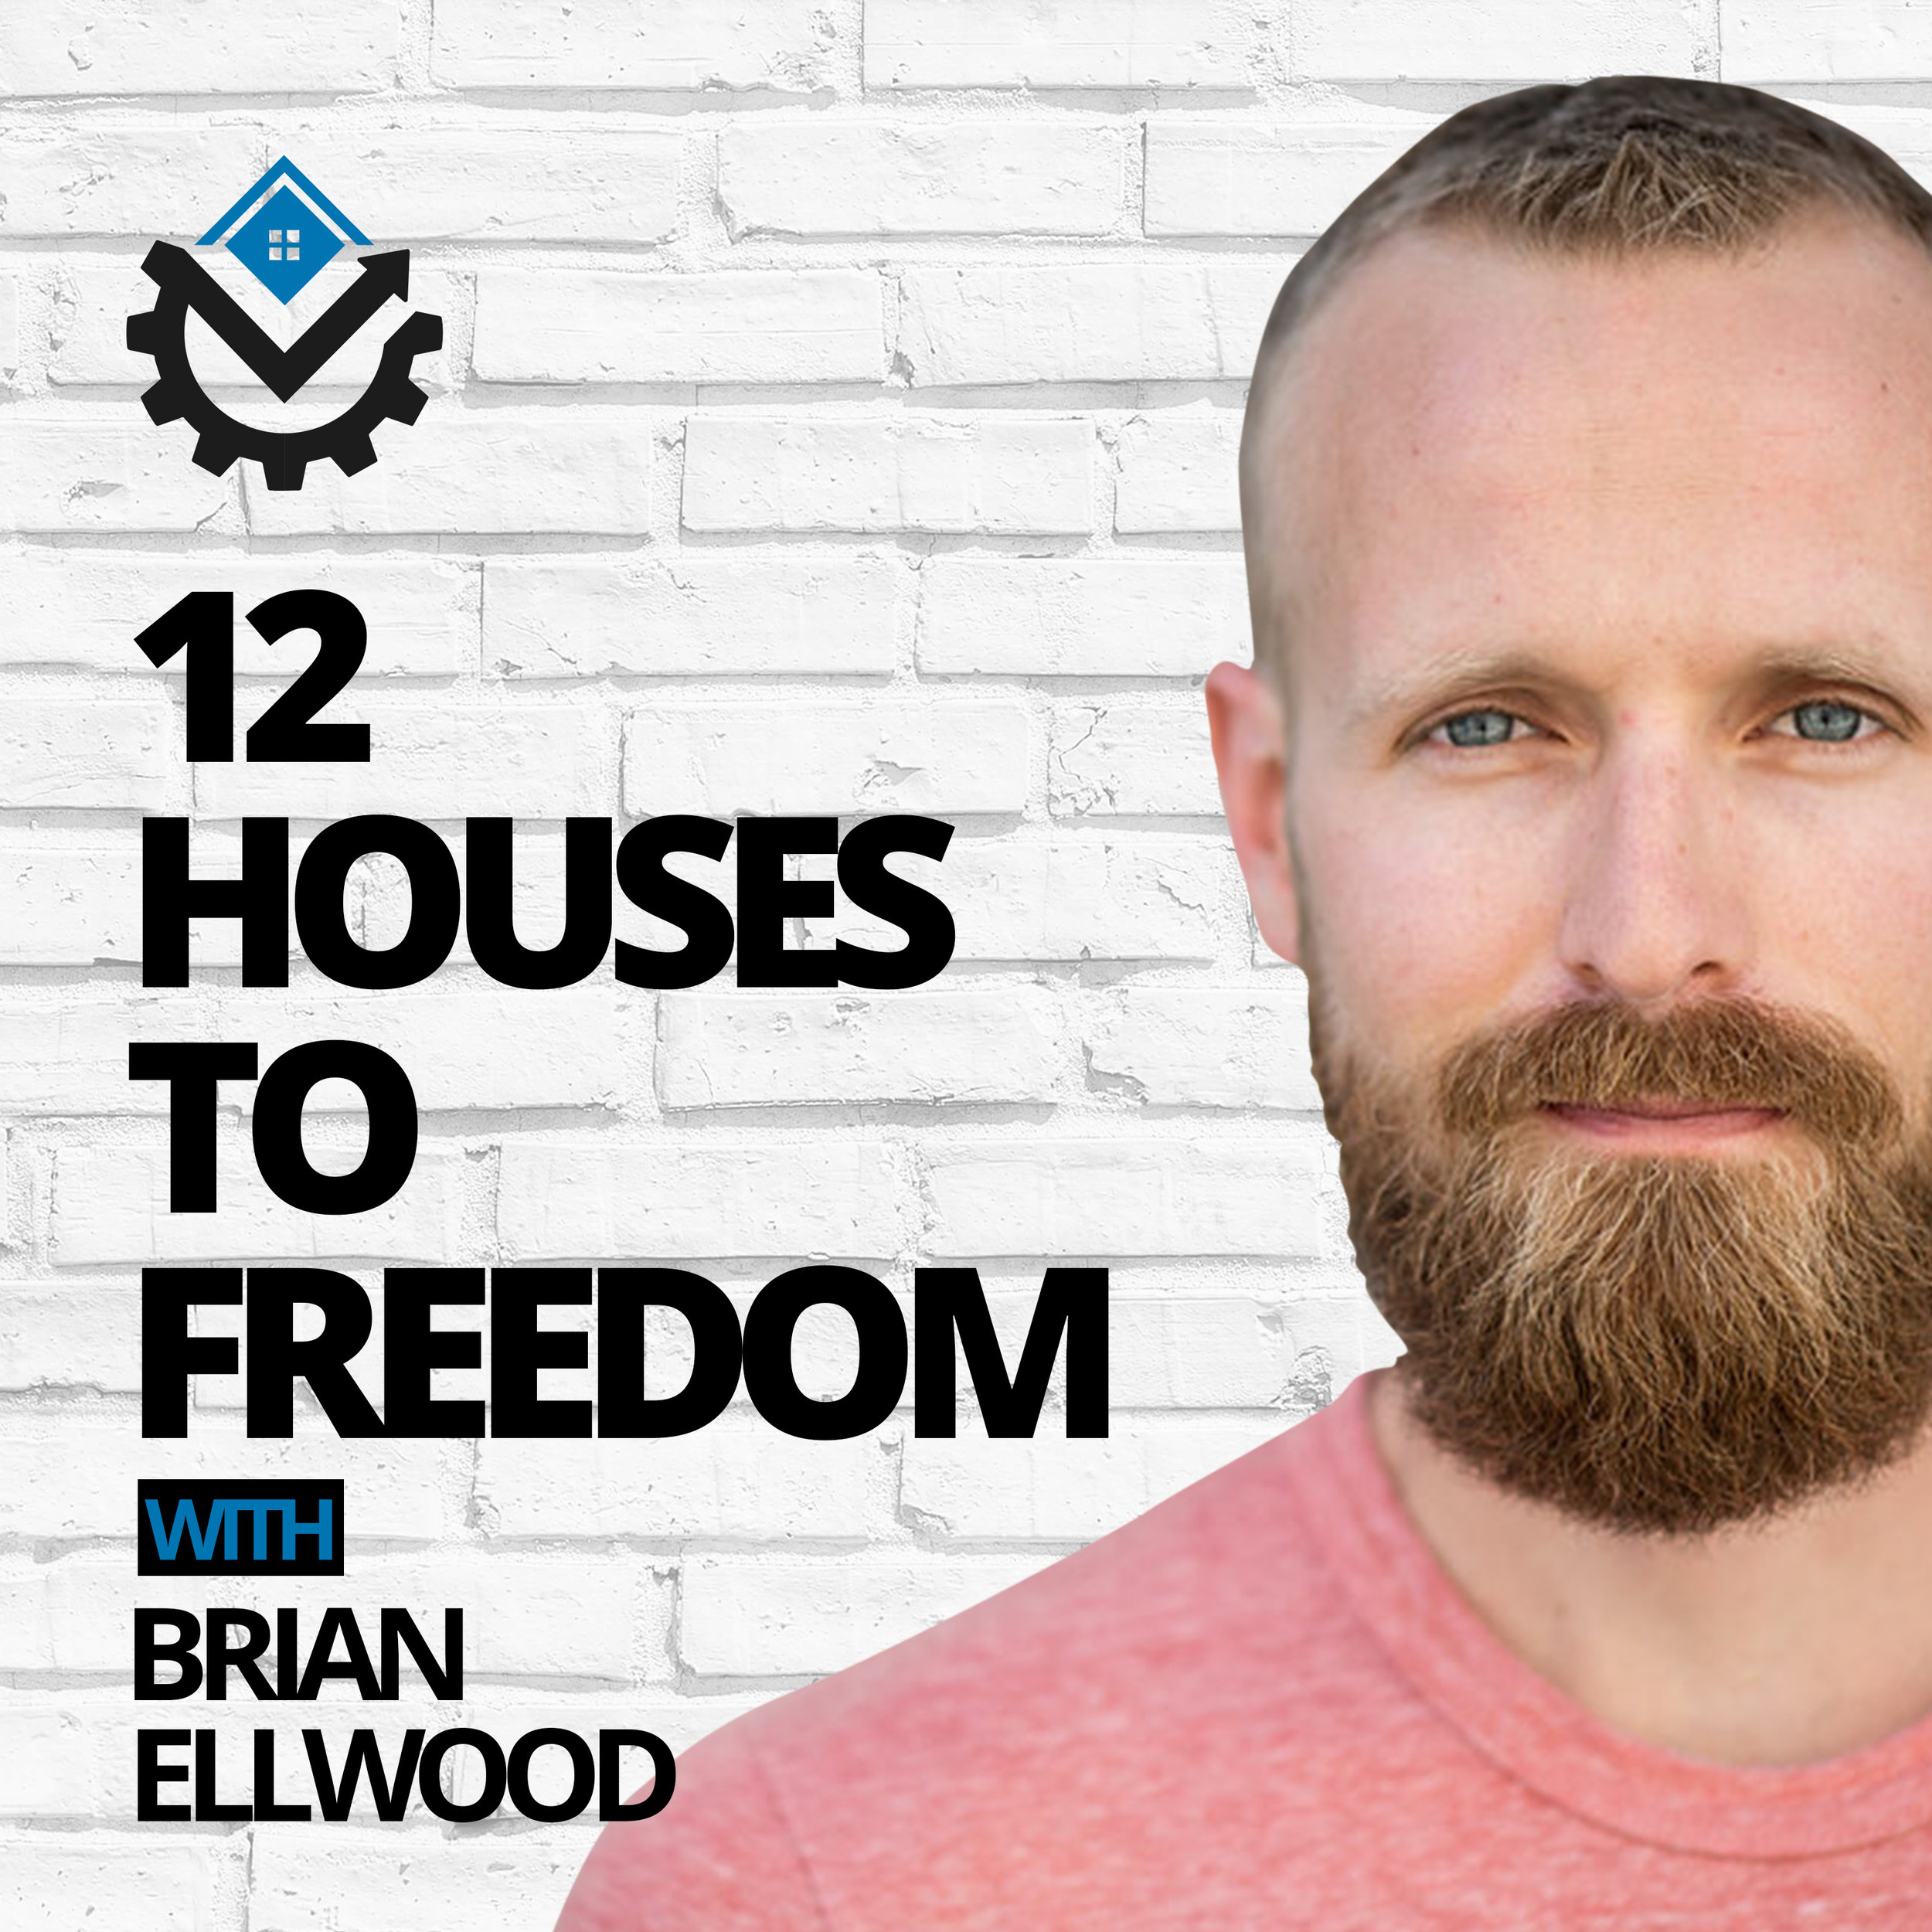 HOST OF THE 12 HOUSES TO FREEDOM PODCAST - Is there a way to finally stop trading your time for dollars, so you can spend time doing the things you love? What if you could you do that with just 12 rental properties, even if you had no cash and no experience? 12 Houses to Freedom tackles all of these questions and more. If financial freedom and lifestyle is your goal, this podcast will give you the answers you need.